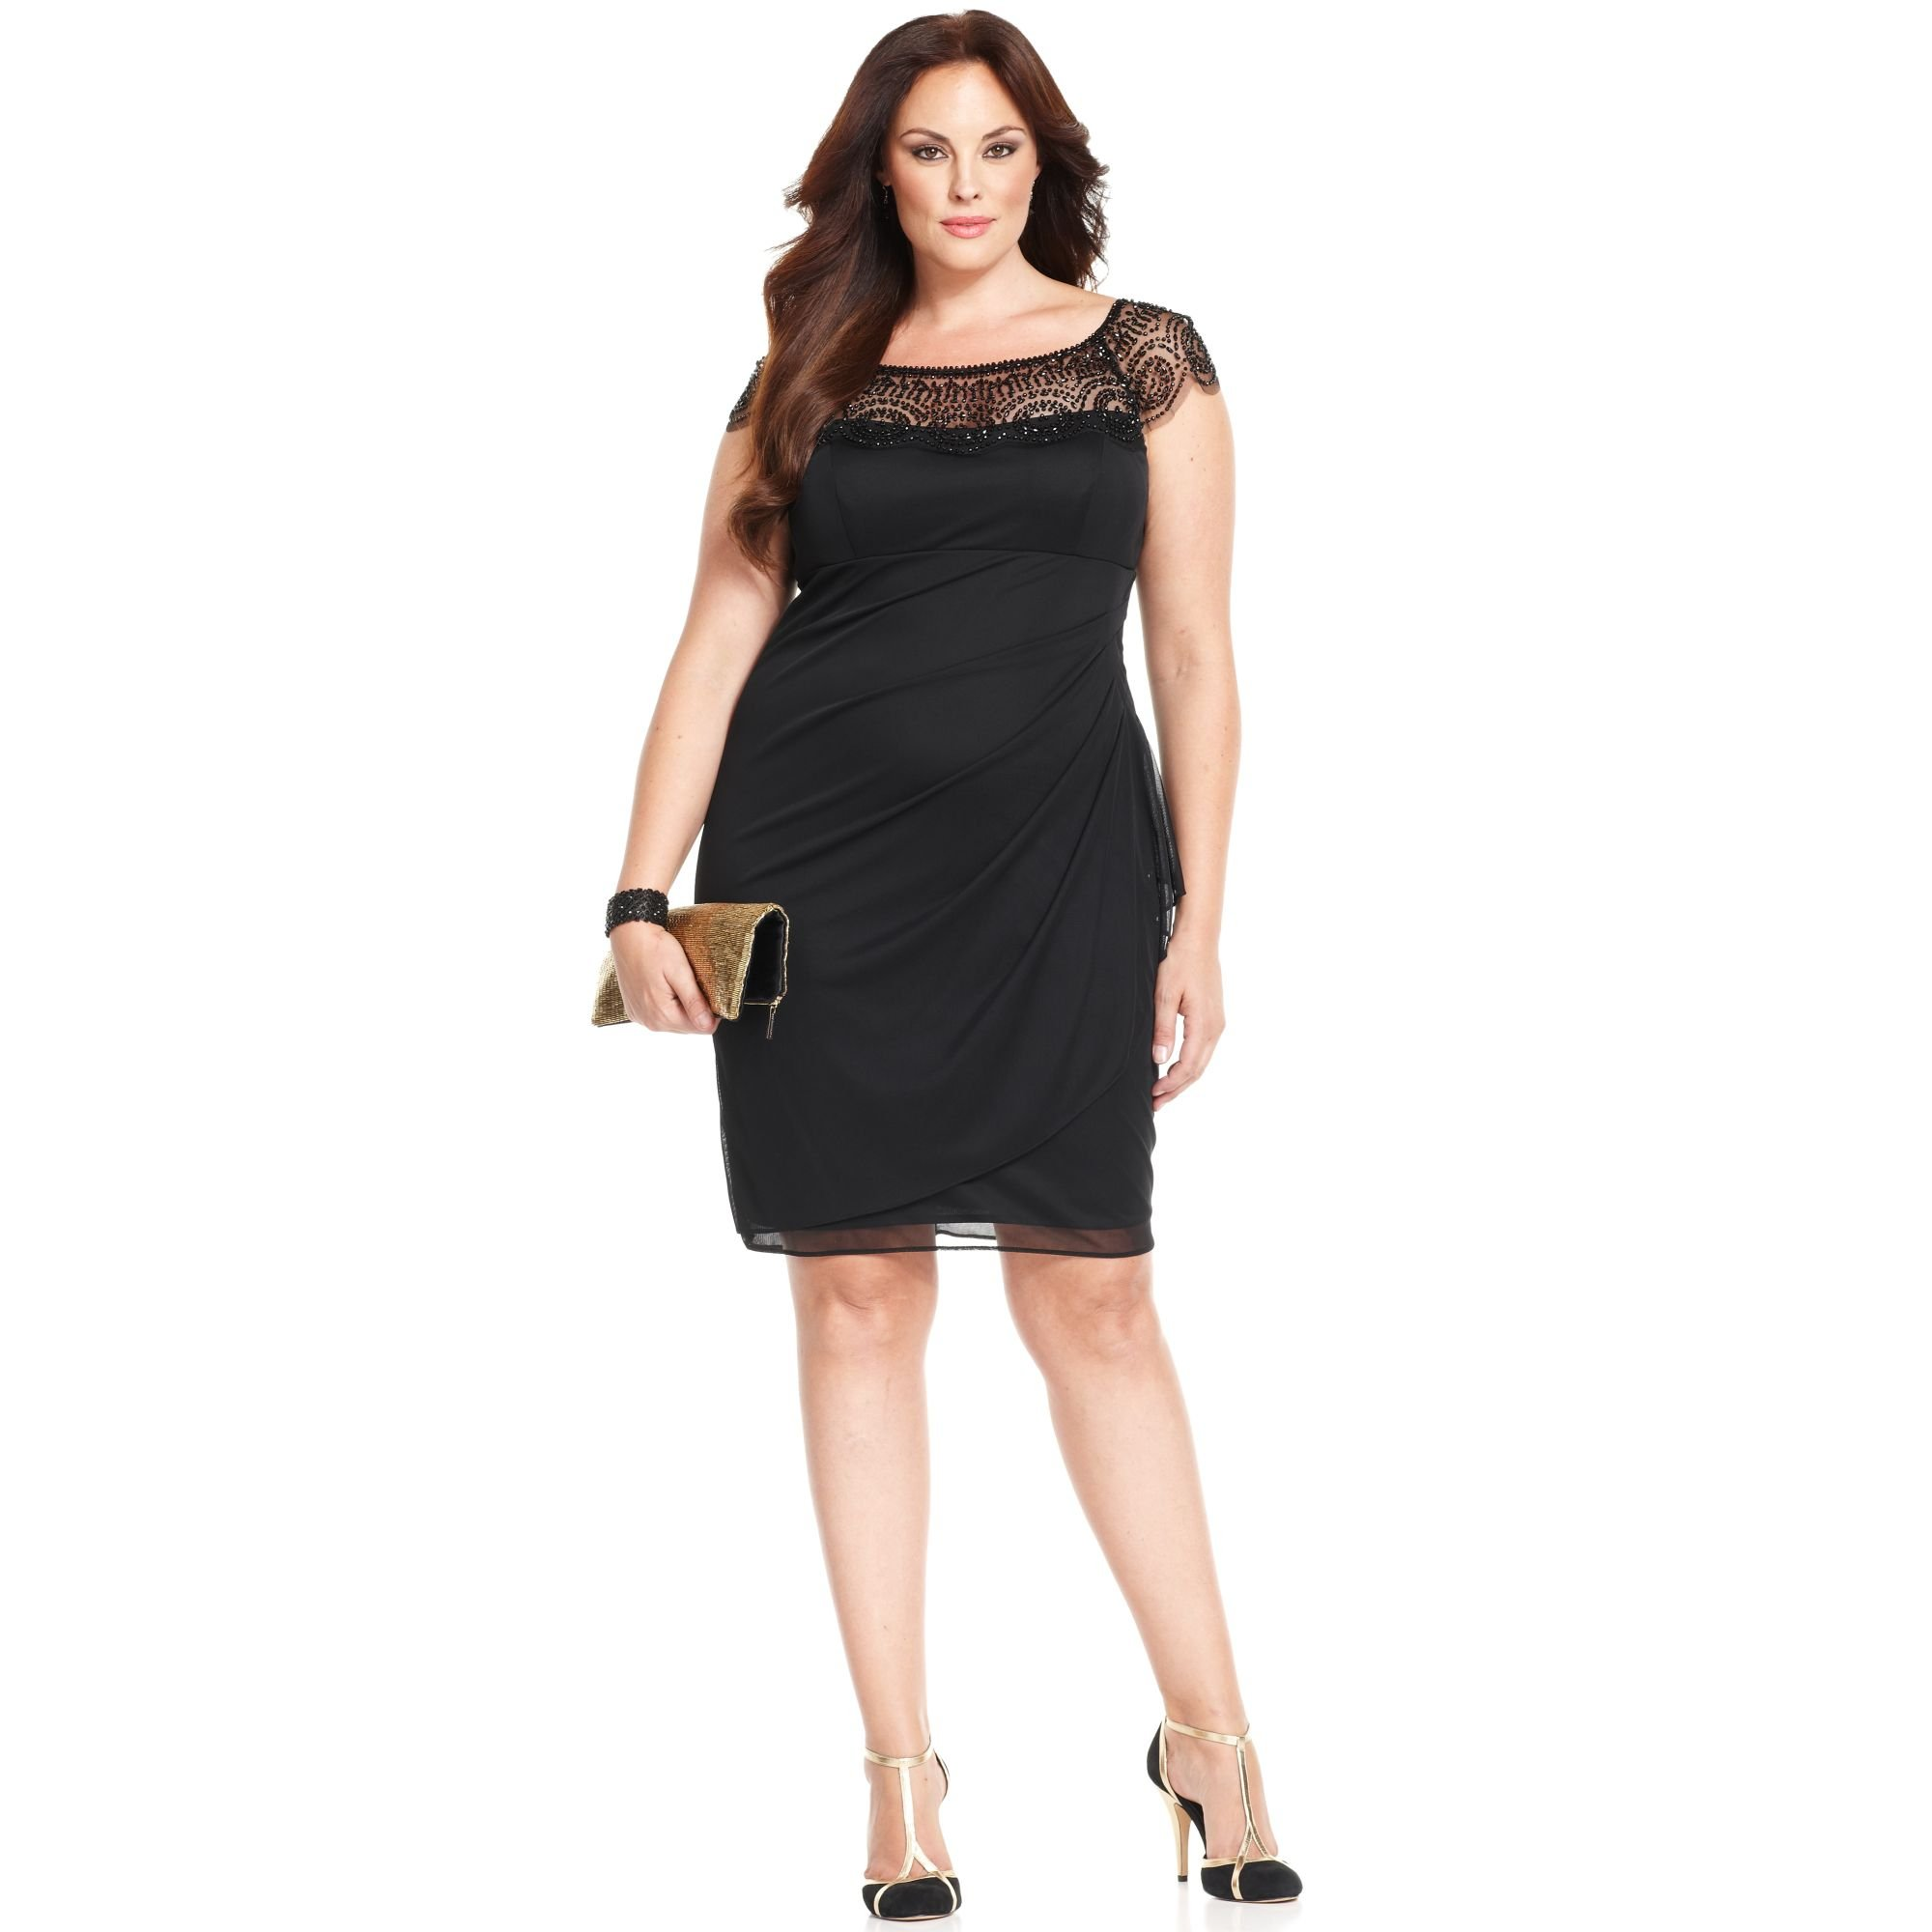 plus size dresses below $20